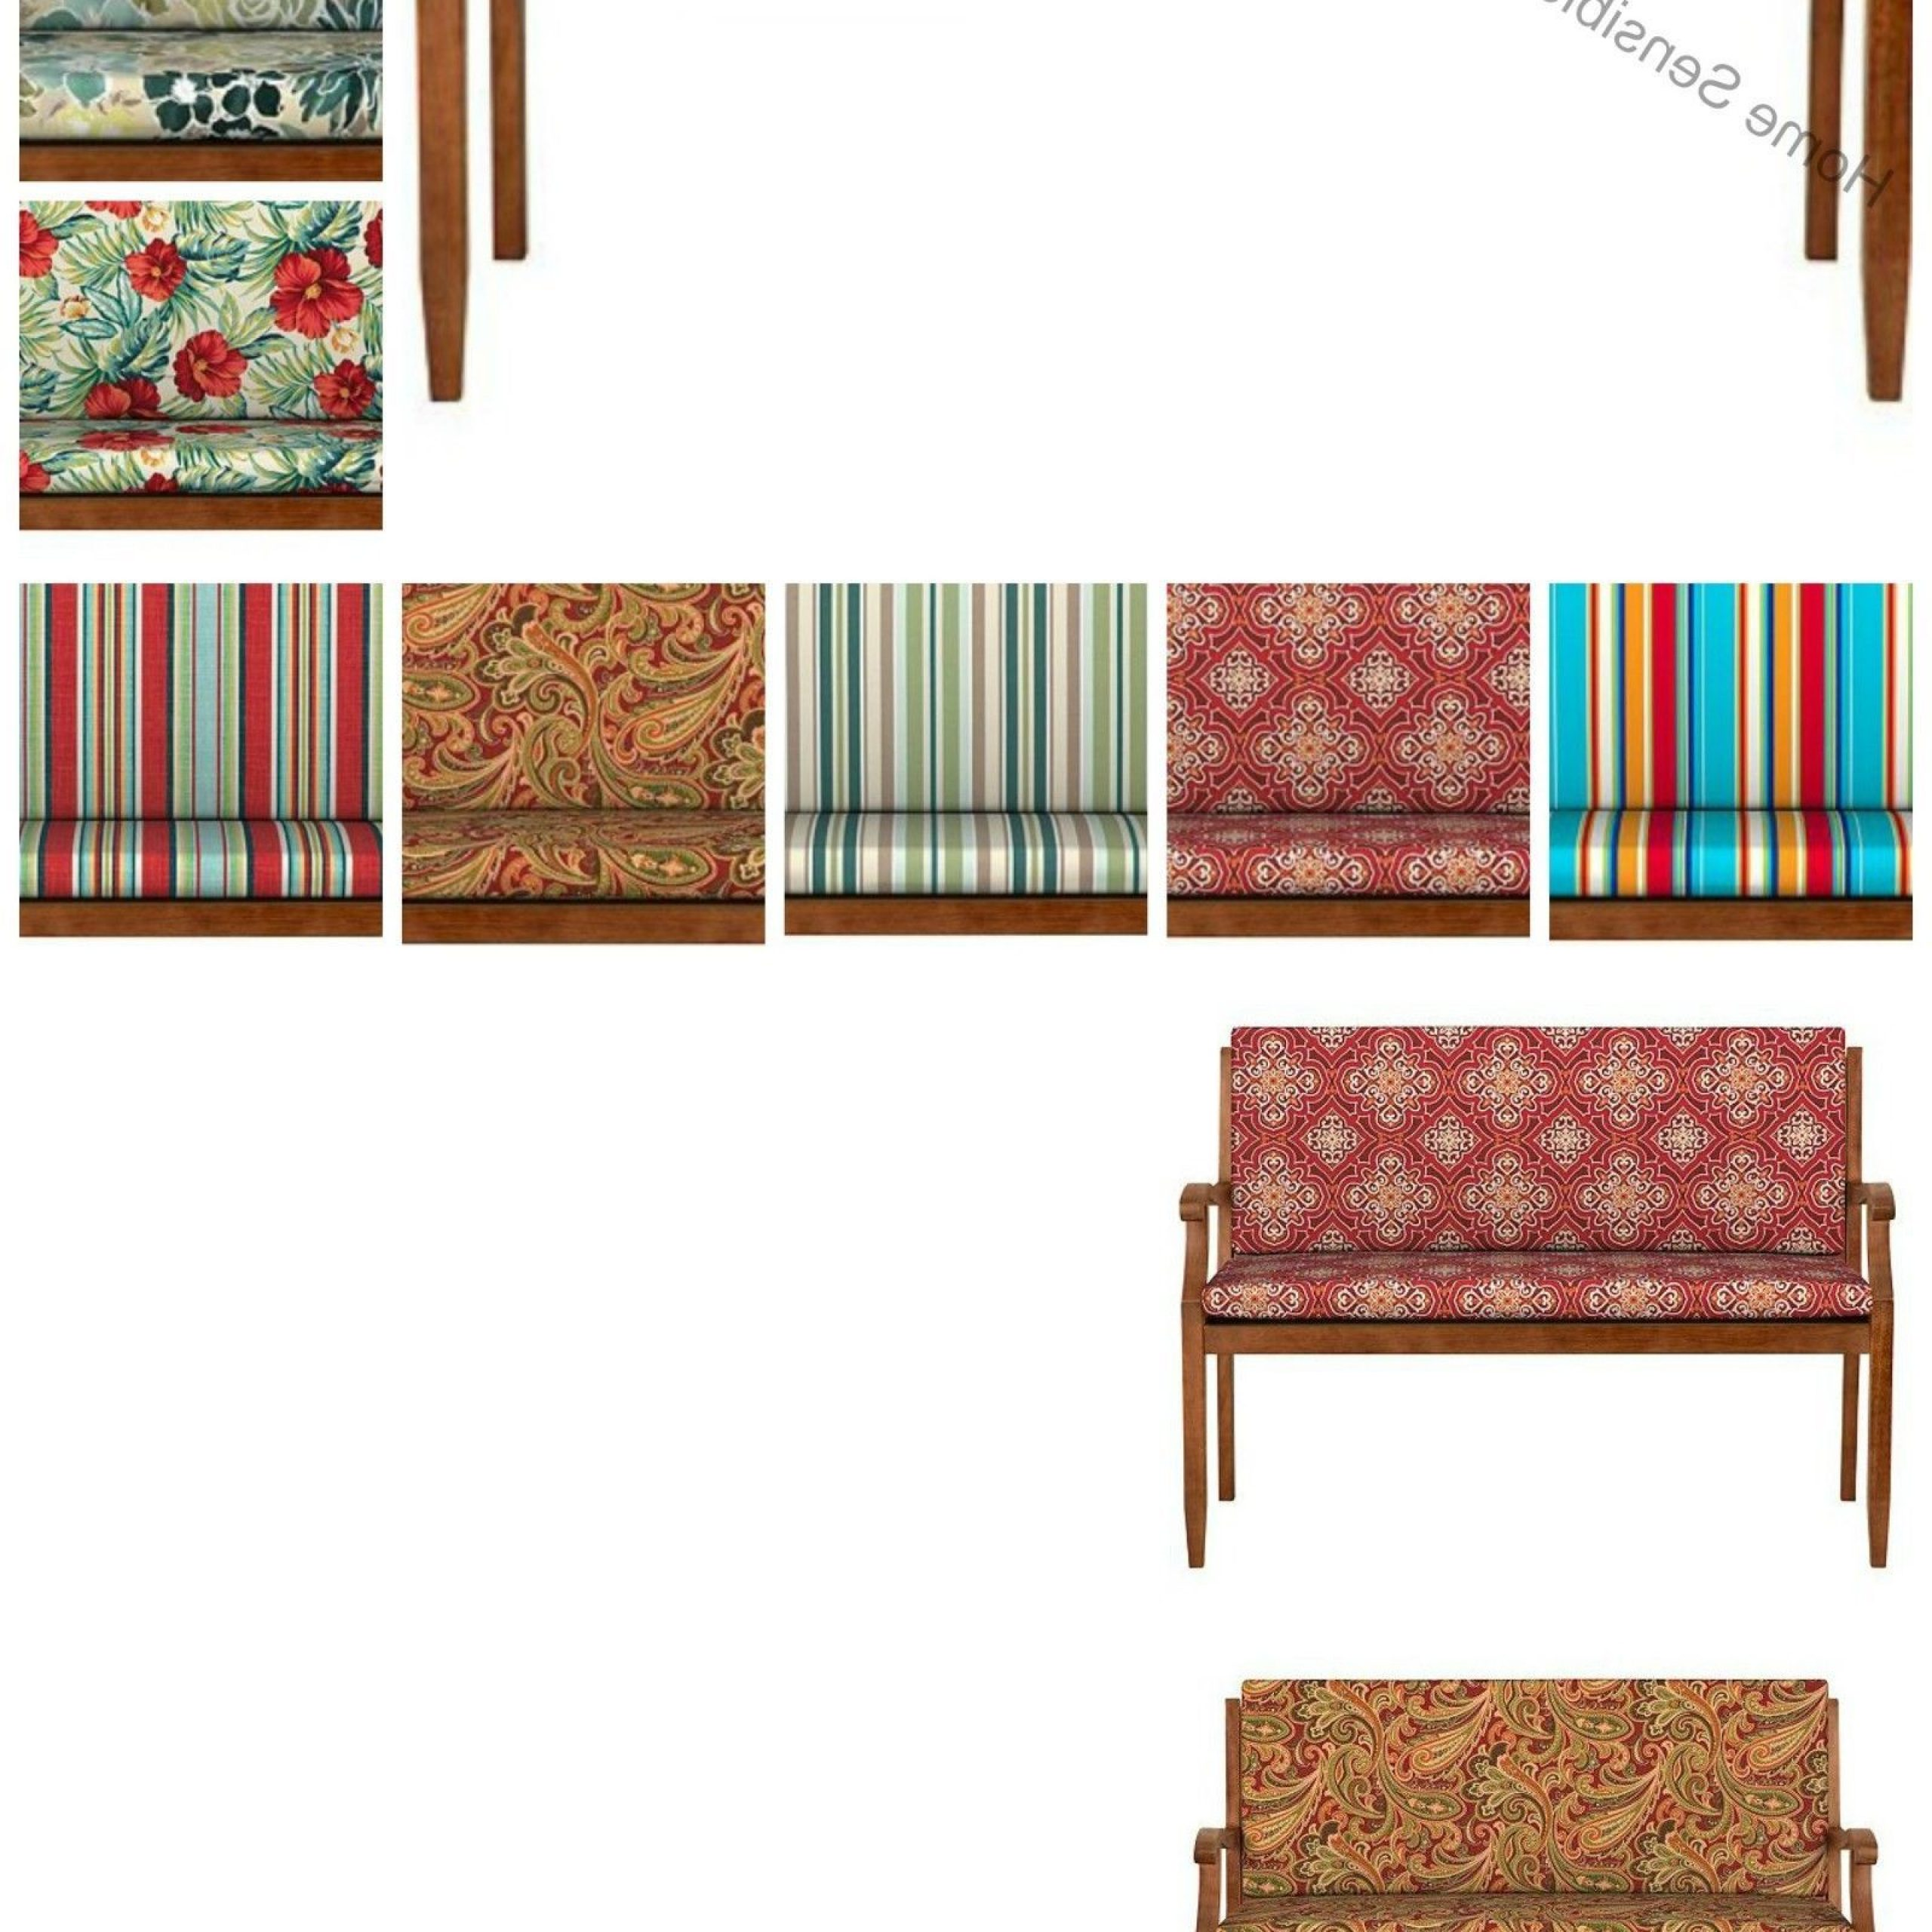 Glider Benches With Cushion Regarding Most Popular Patio Furniture Cushions And Pads 79683: 40 Hinged Glider (View 16 of 30)